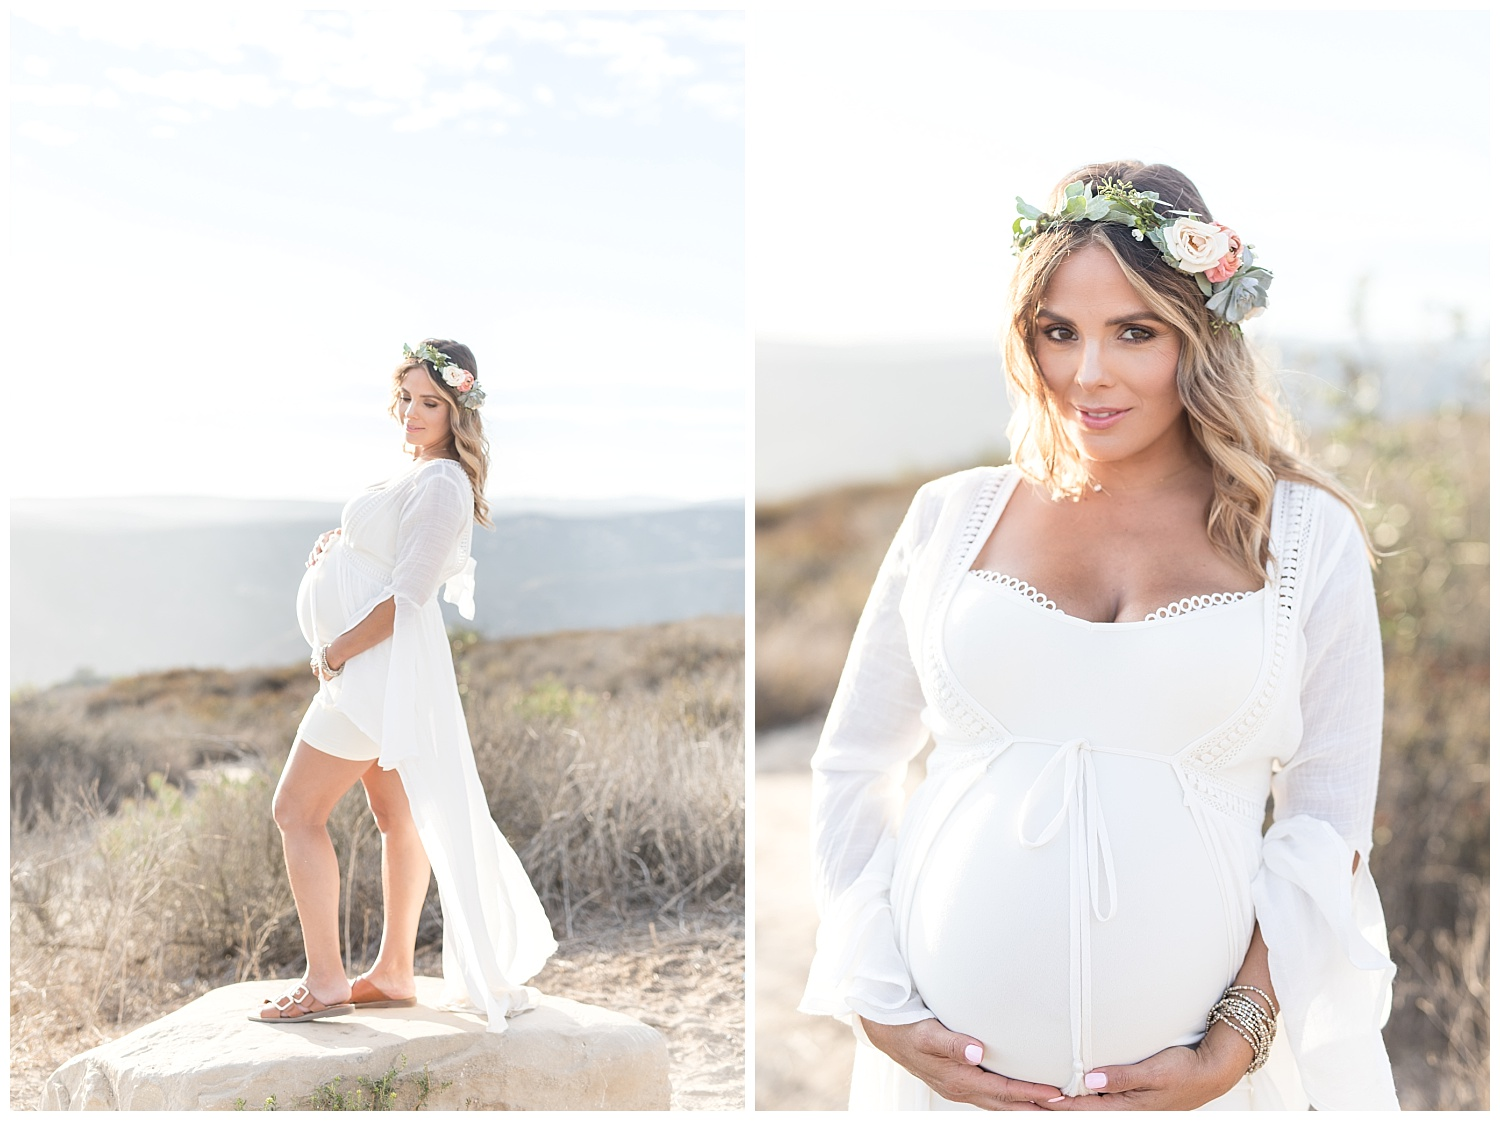 ashley - laguna beach, orange county hiking trail - maternity-0023